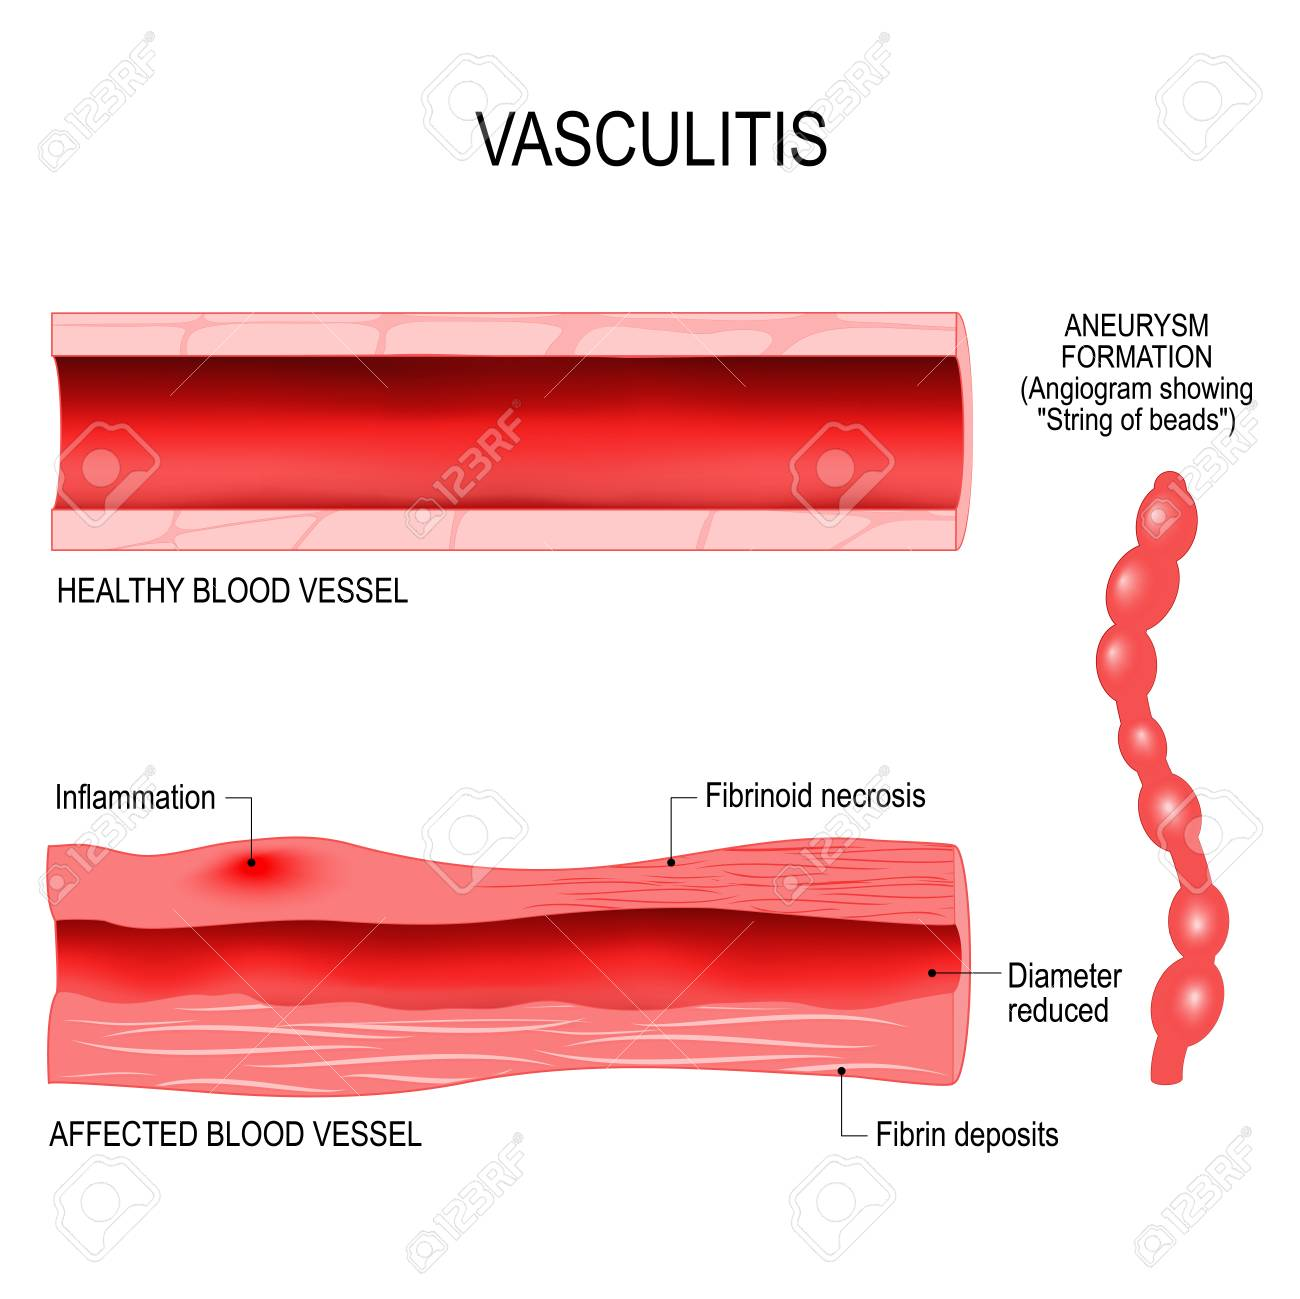 inflammation of blood vessels